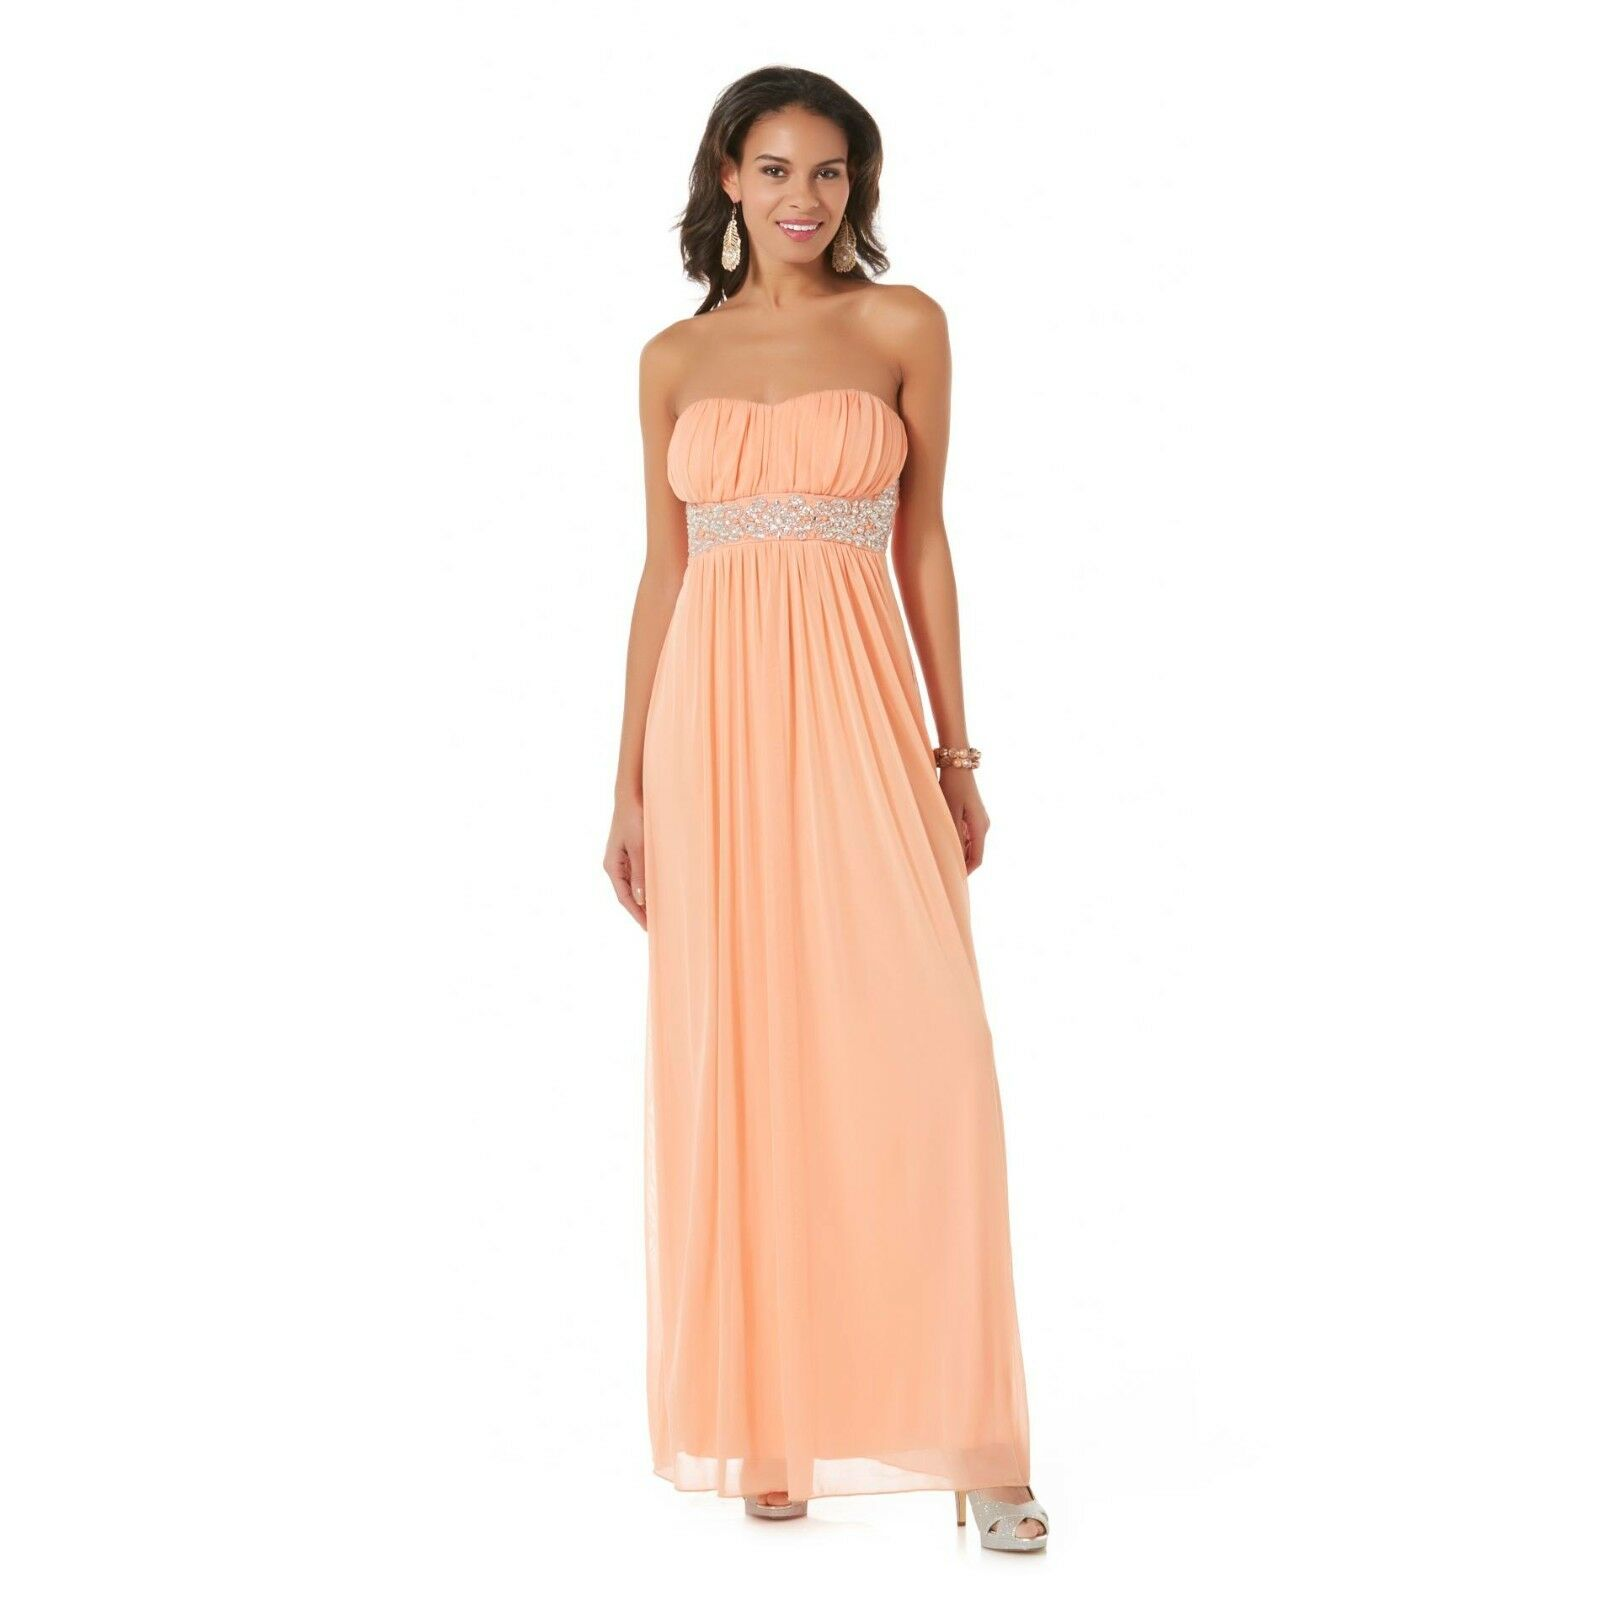 New City Triangles Junior Strapless Beaded Party Dress Apricot Size 11